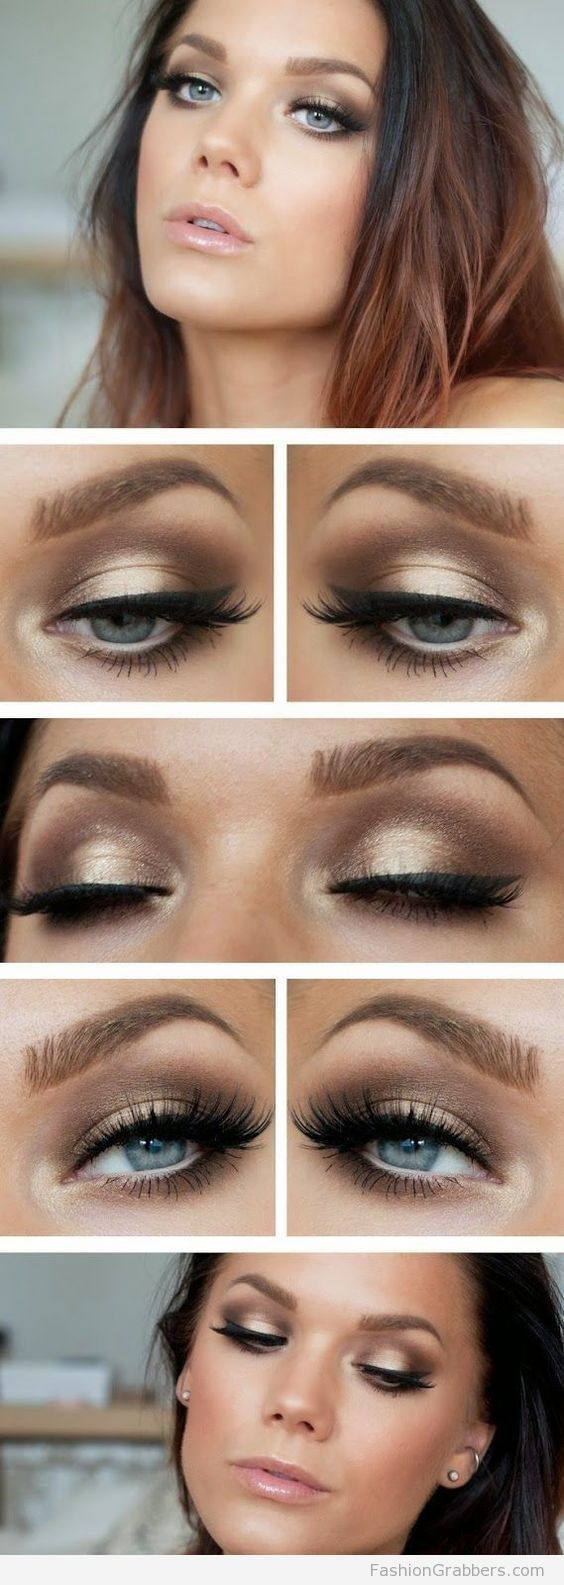 Evening Makeup Ideas Including Natural Simple Beauty Tips And Products That Will Save You Time And Money We Co Bronzed Makeup Tutorial Eye Makeup Skin Makeup